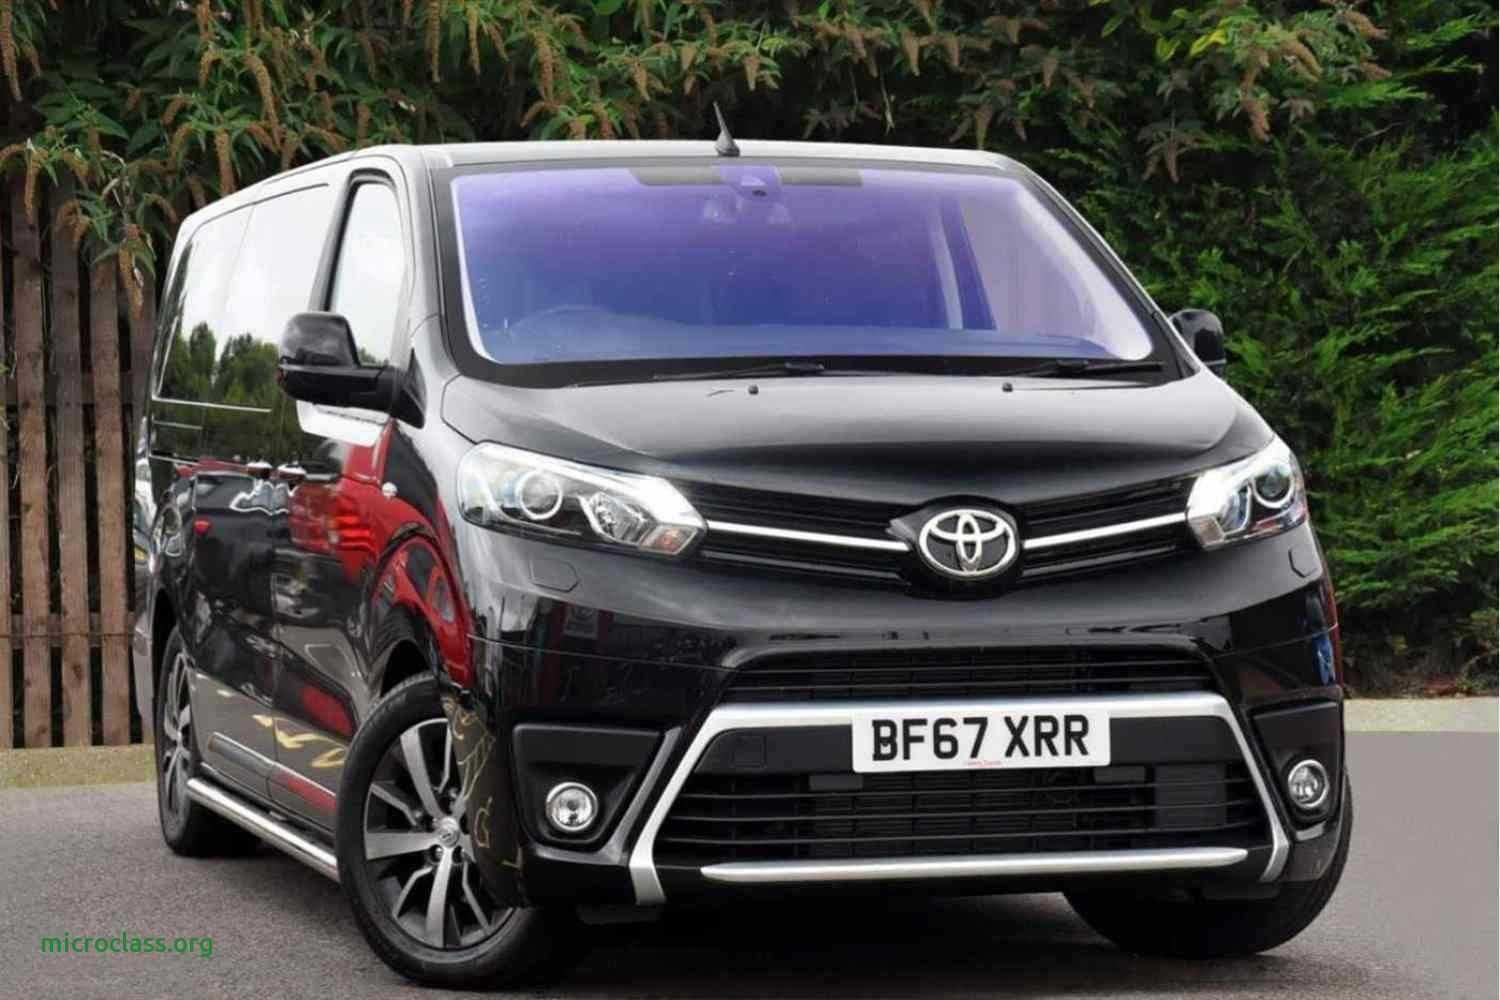 71 Great 2020 New Toyota Wish Prices by 2020 New Toyota Wish